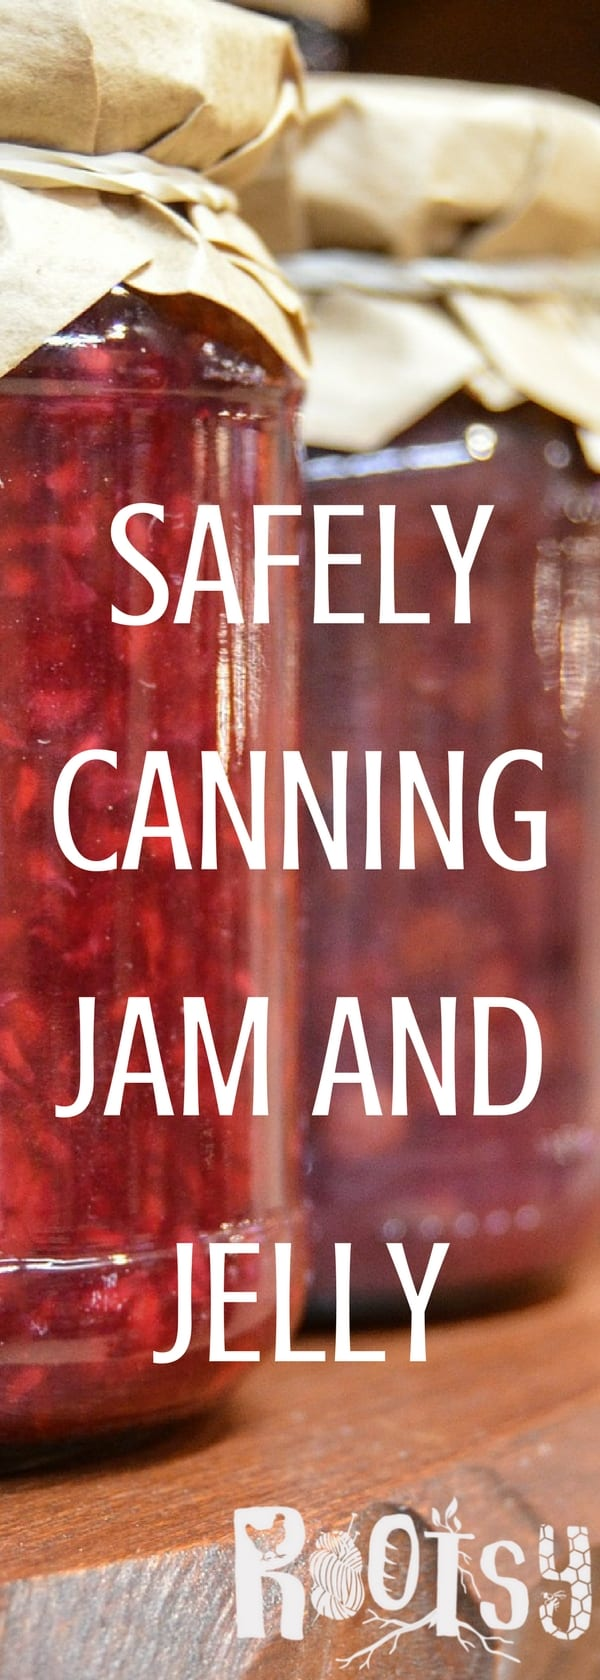 Safely Canning Jam and Jelly at Home - Rootsy